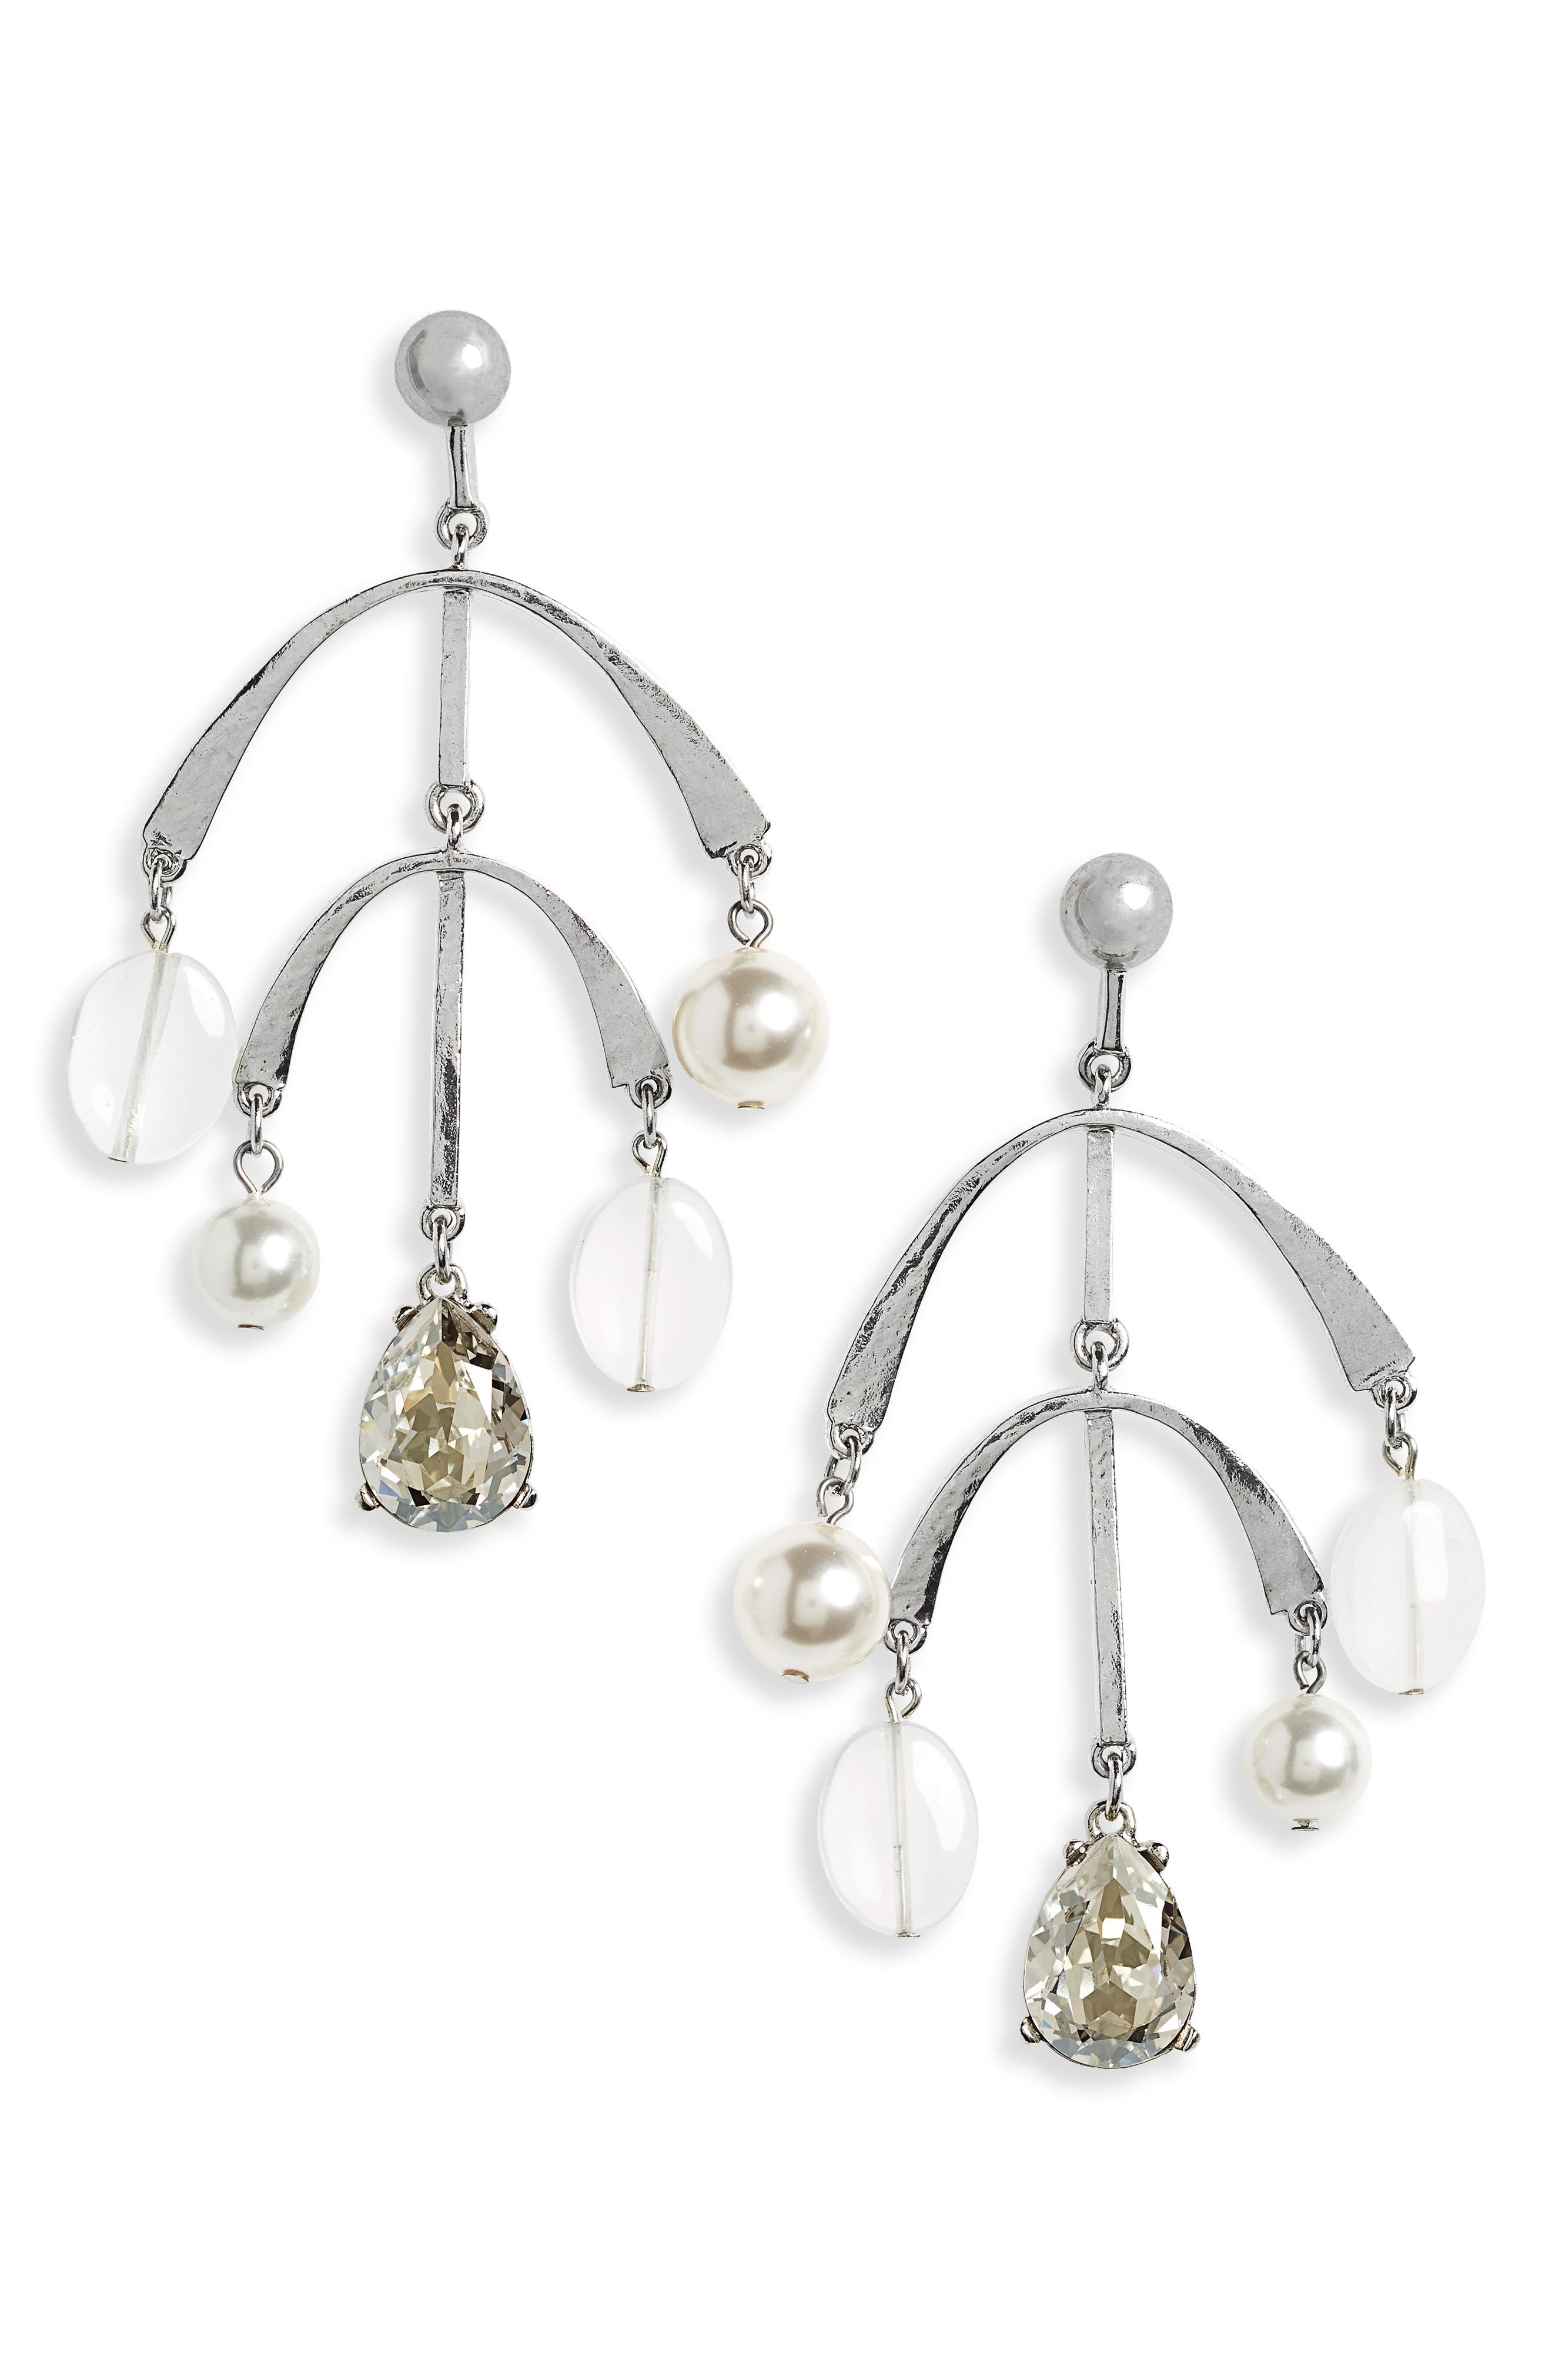 Mobile Drop Earring with Imitation Pearl,                             Main thumbnail 1, color,                             Cry Shade/ Silver